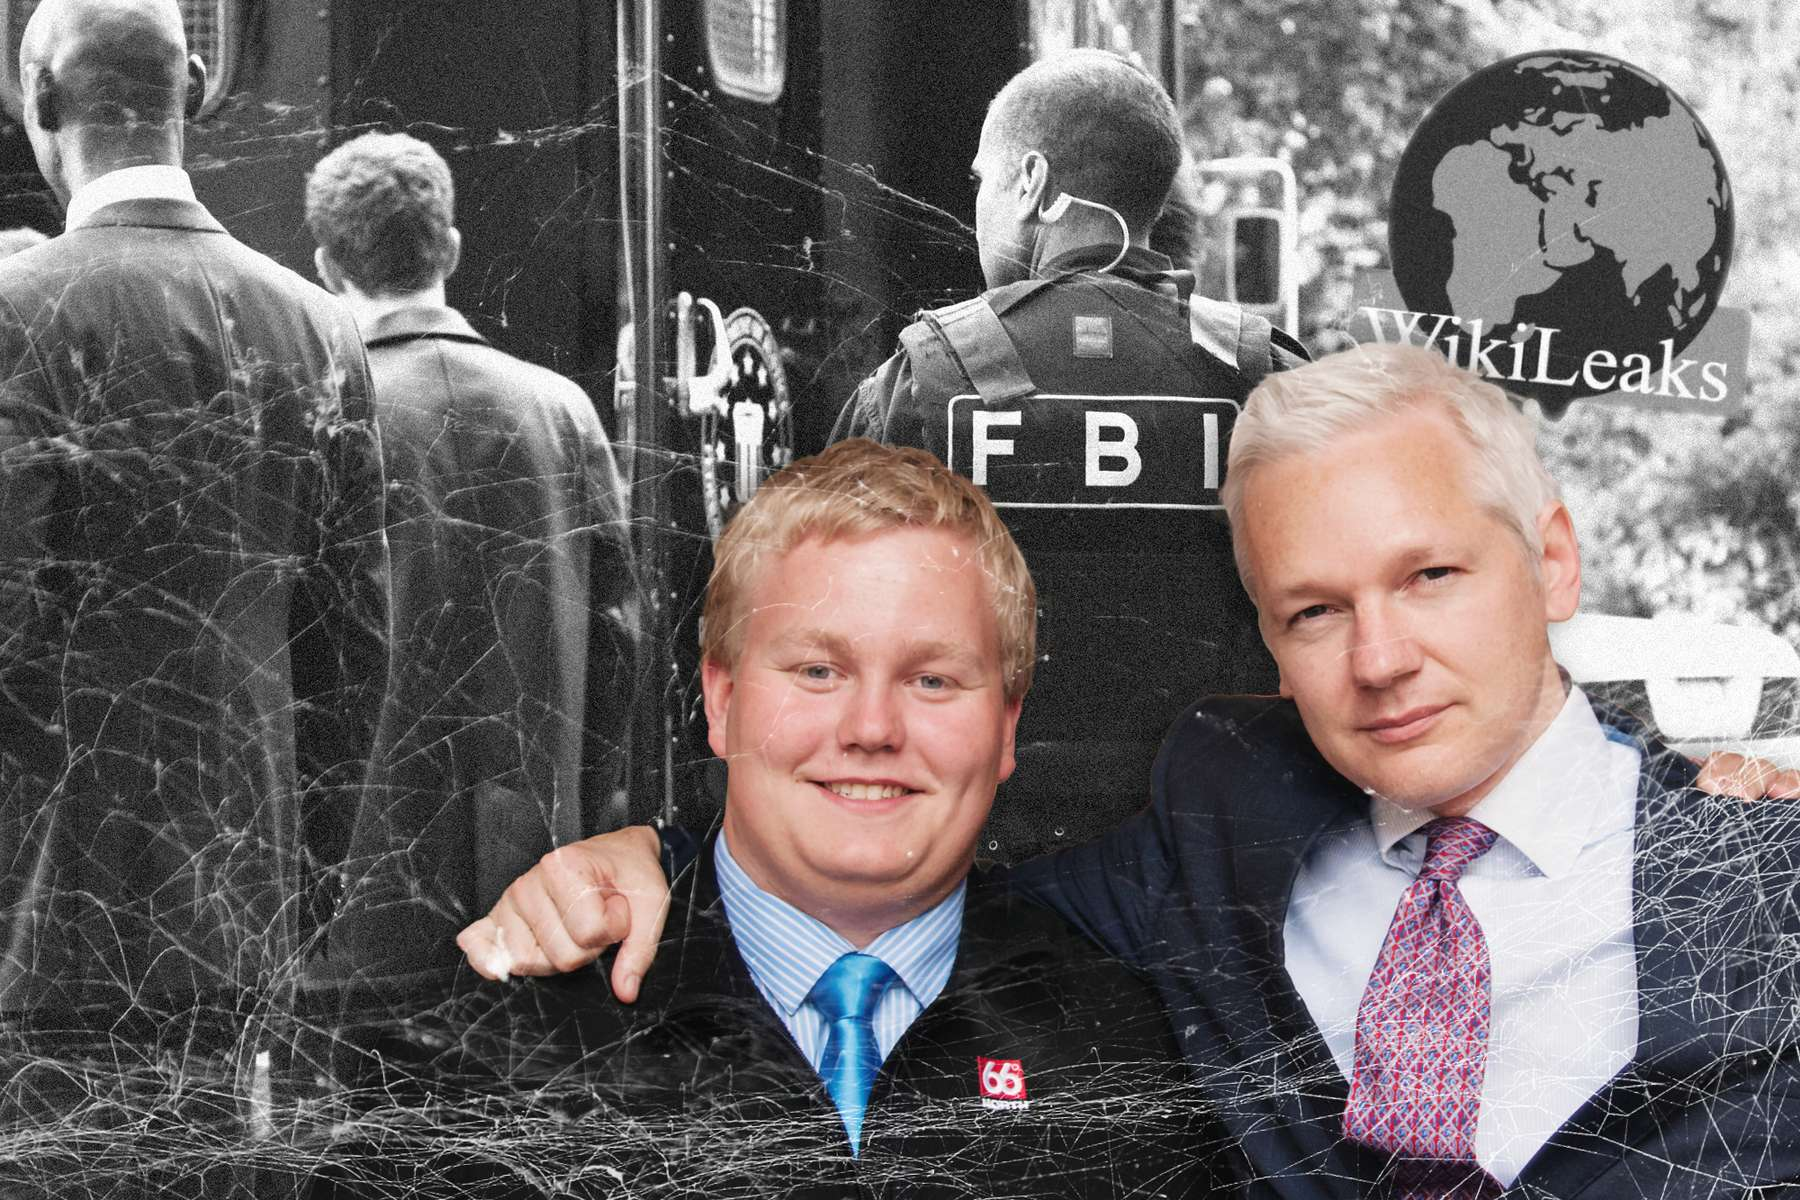 Key witness in Assange case admits to lies in indictment